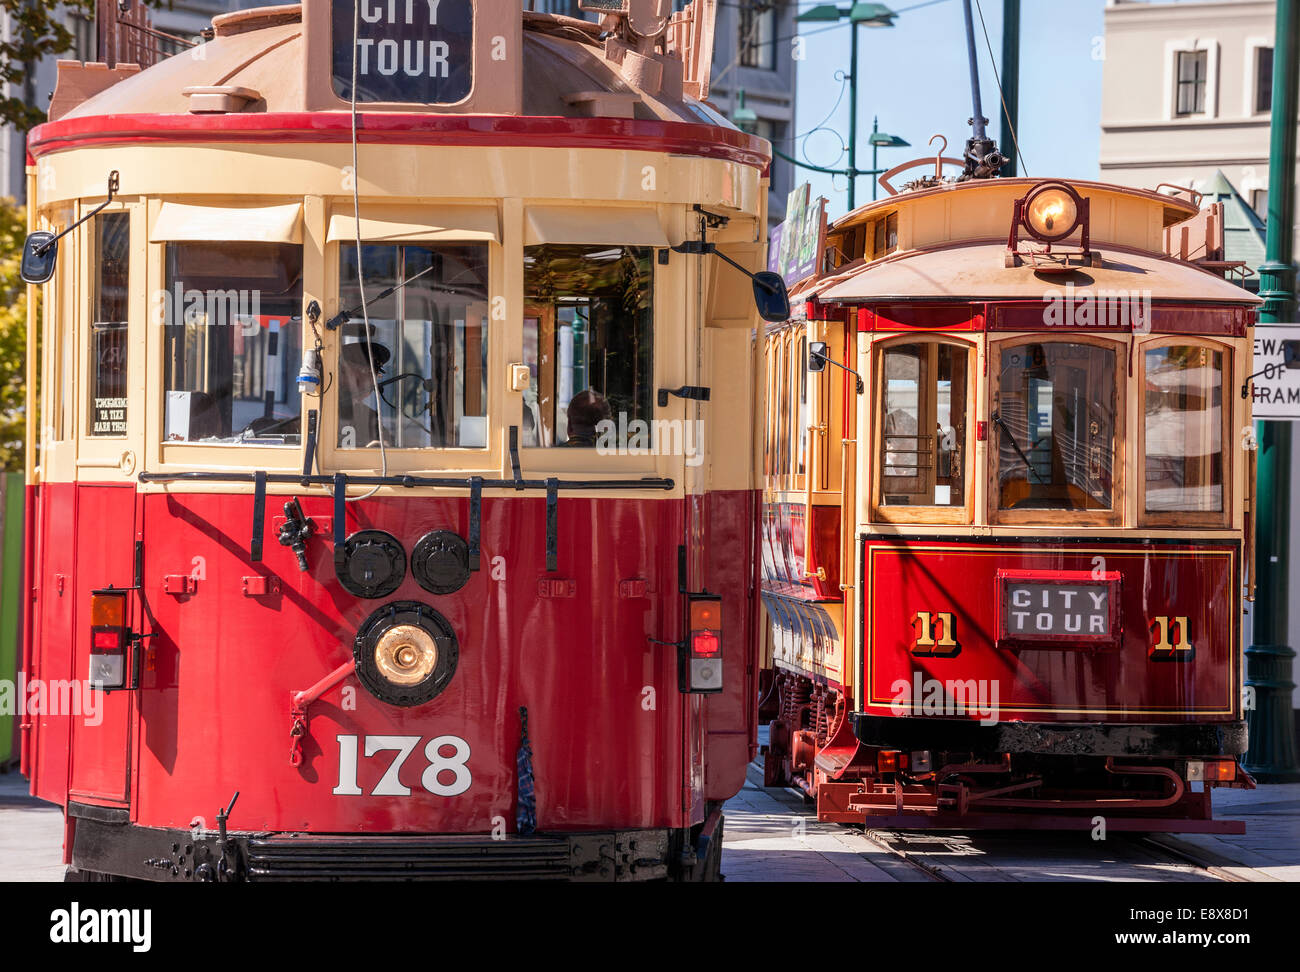 Christchurch Tramway City Tour trams streetcars trolleys trolley cars on Cathedral Square Christchurch New Zealand - Stock Image